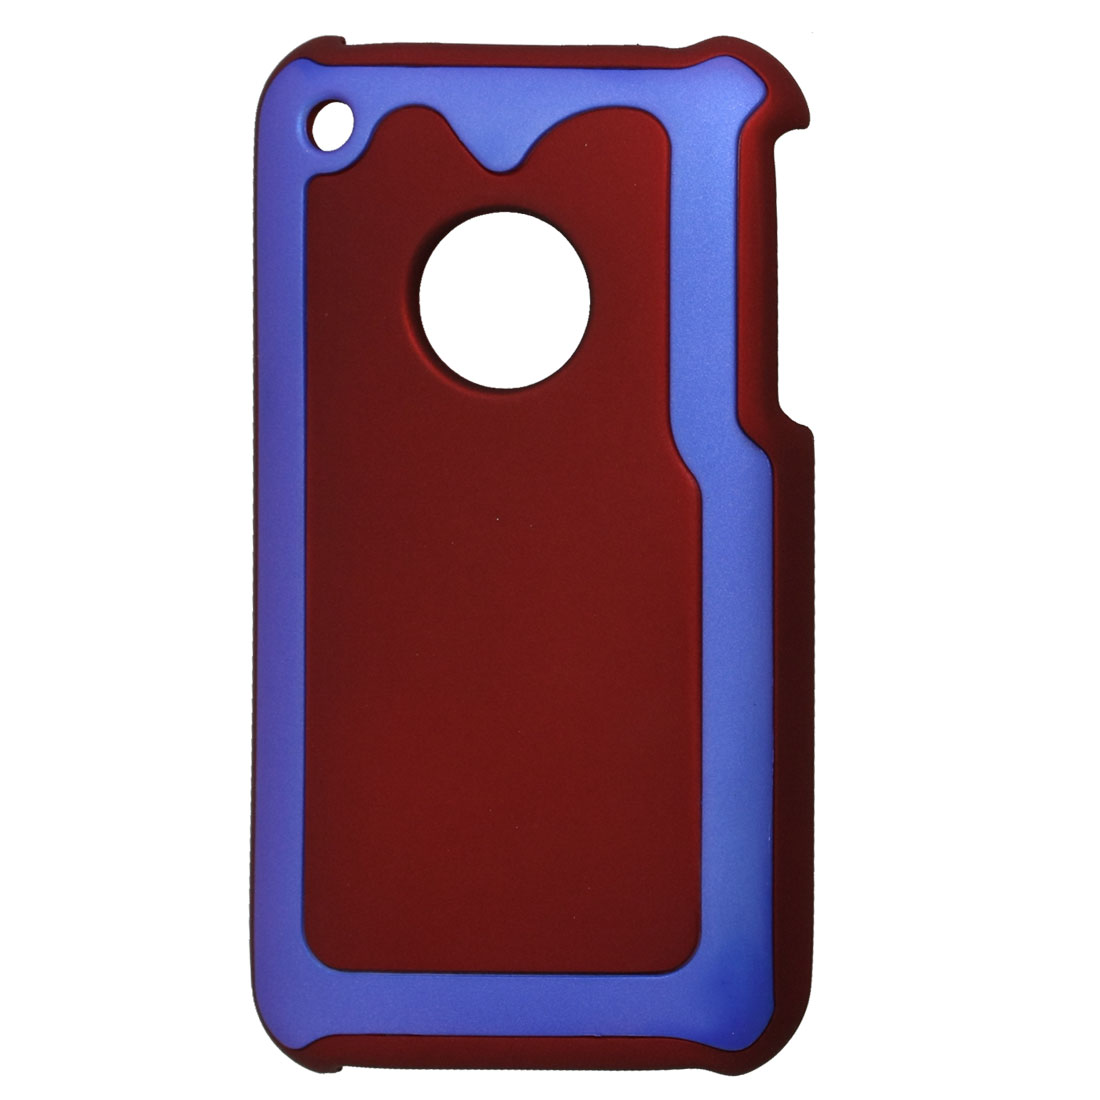 Blue Maroon Hard Plastic Back Protector for iPhone 3G 3GS